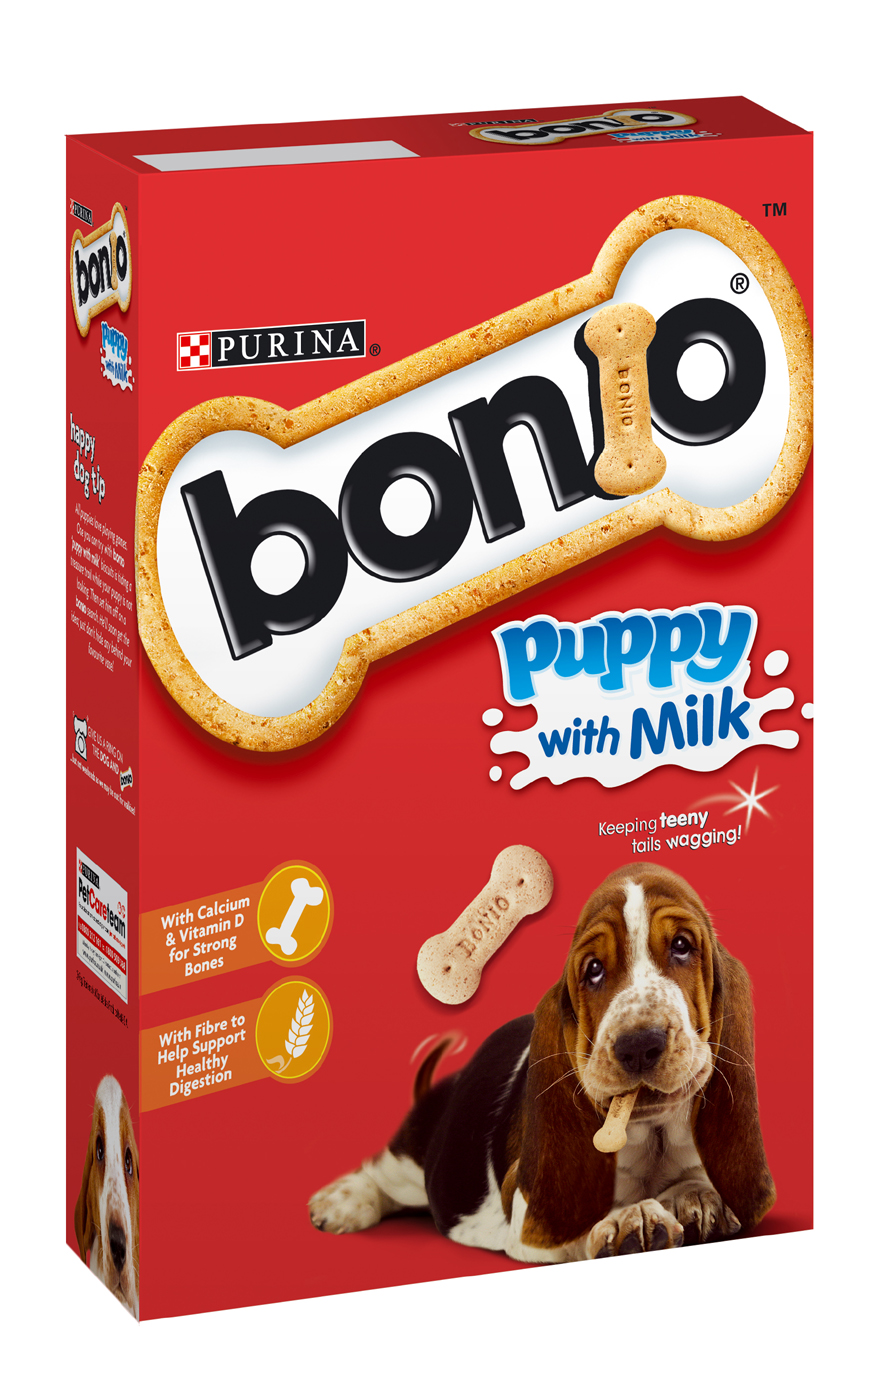 Bonio Puppy Milk Biscuit Treats